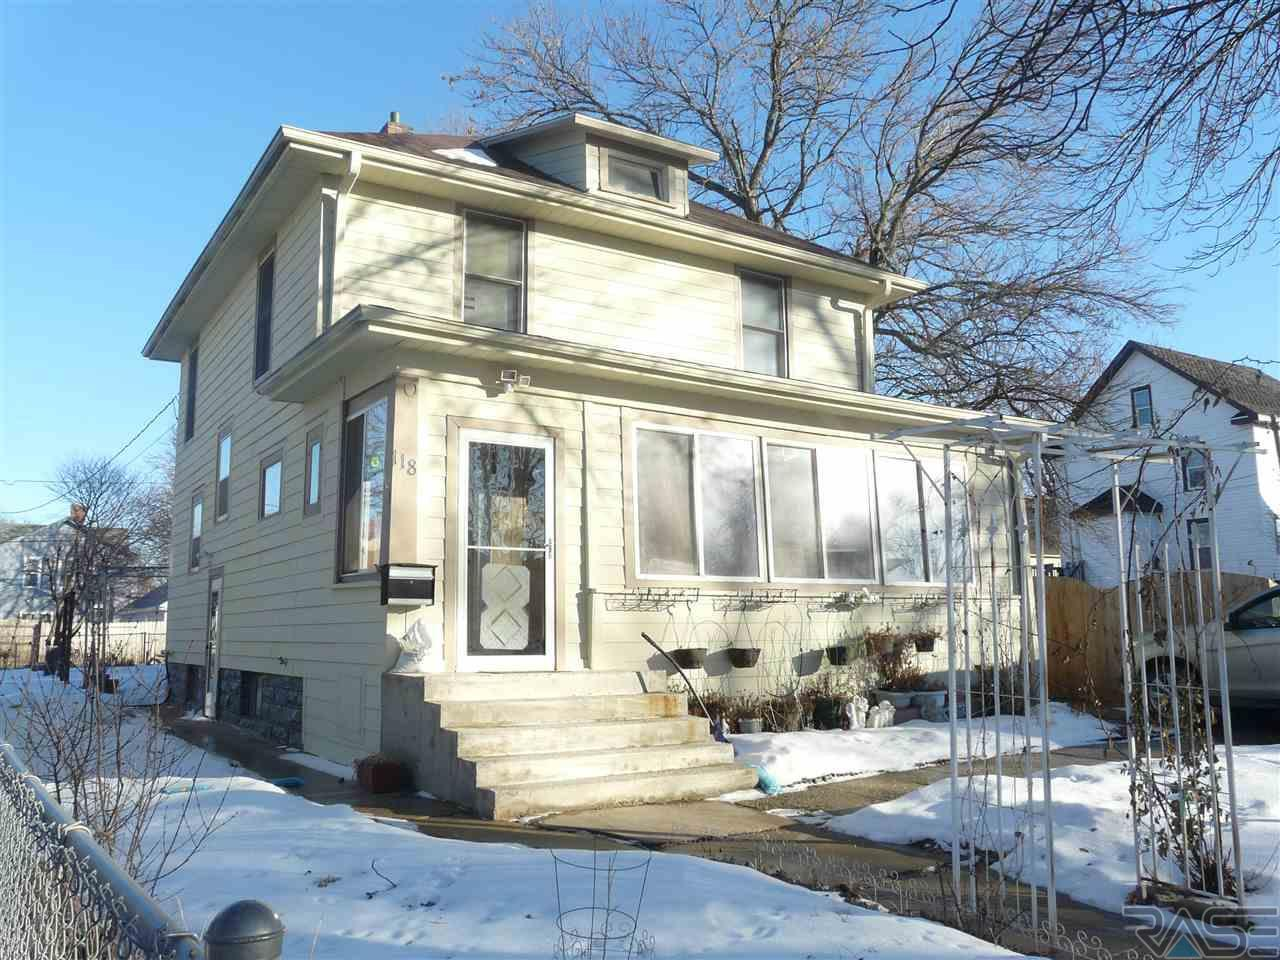 118 s menlo ave sioux falls sd 57104 mls 21700299 for Cabins in sioux falls sd